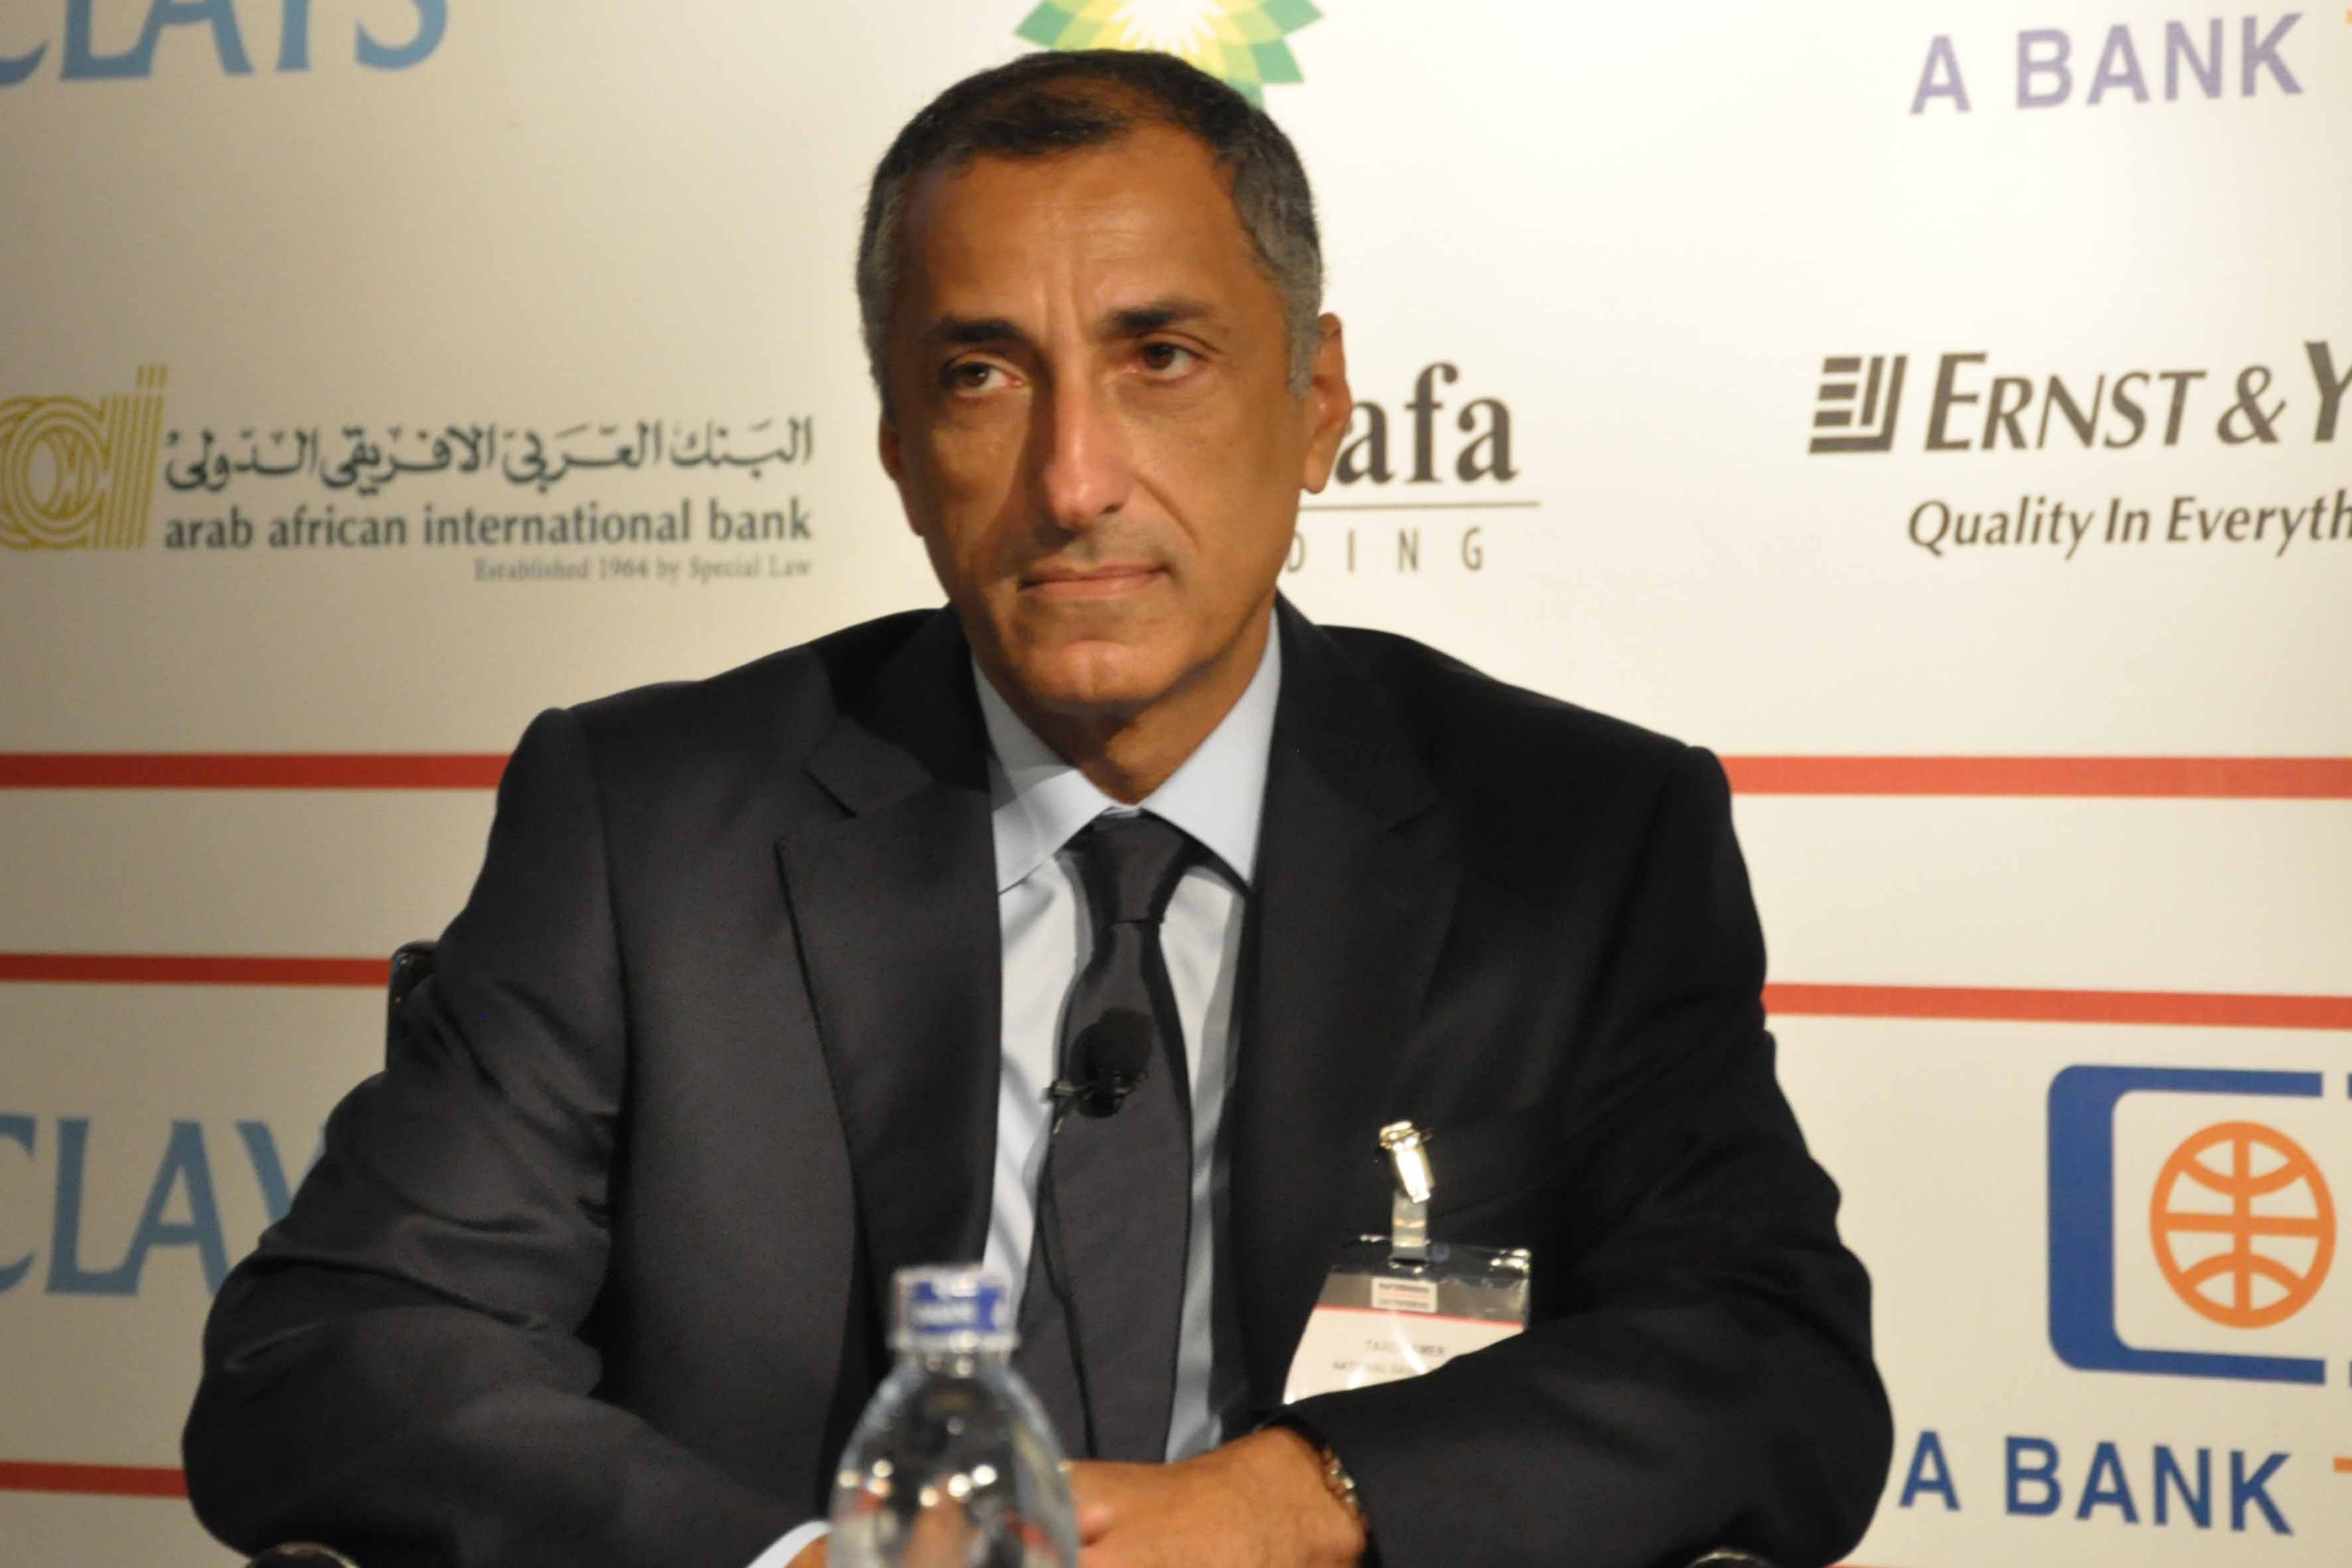 Tarek Amer, the governor of the Central Bank of Egypt